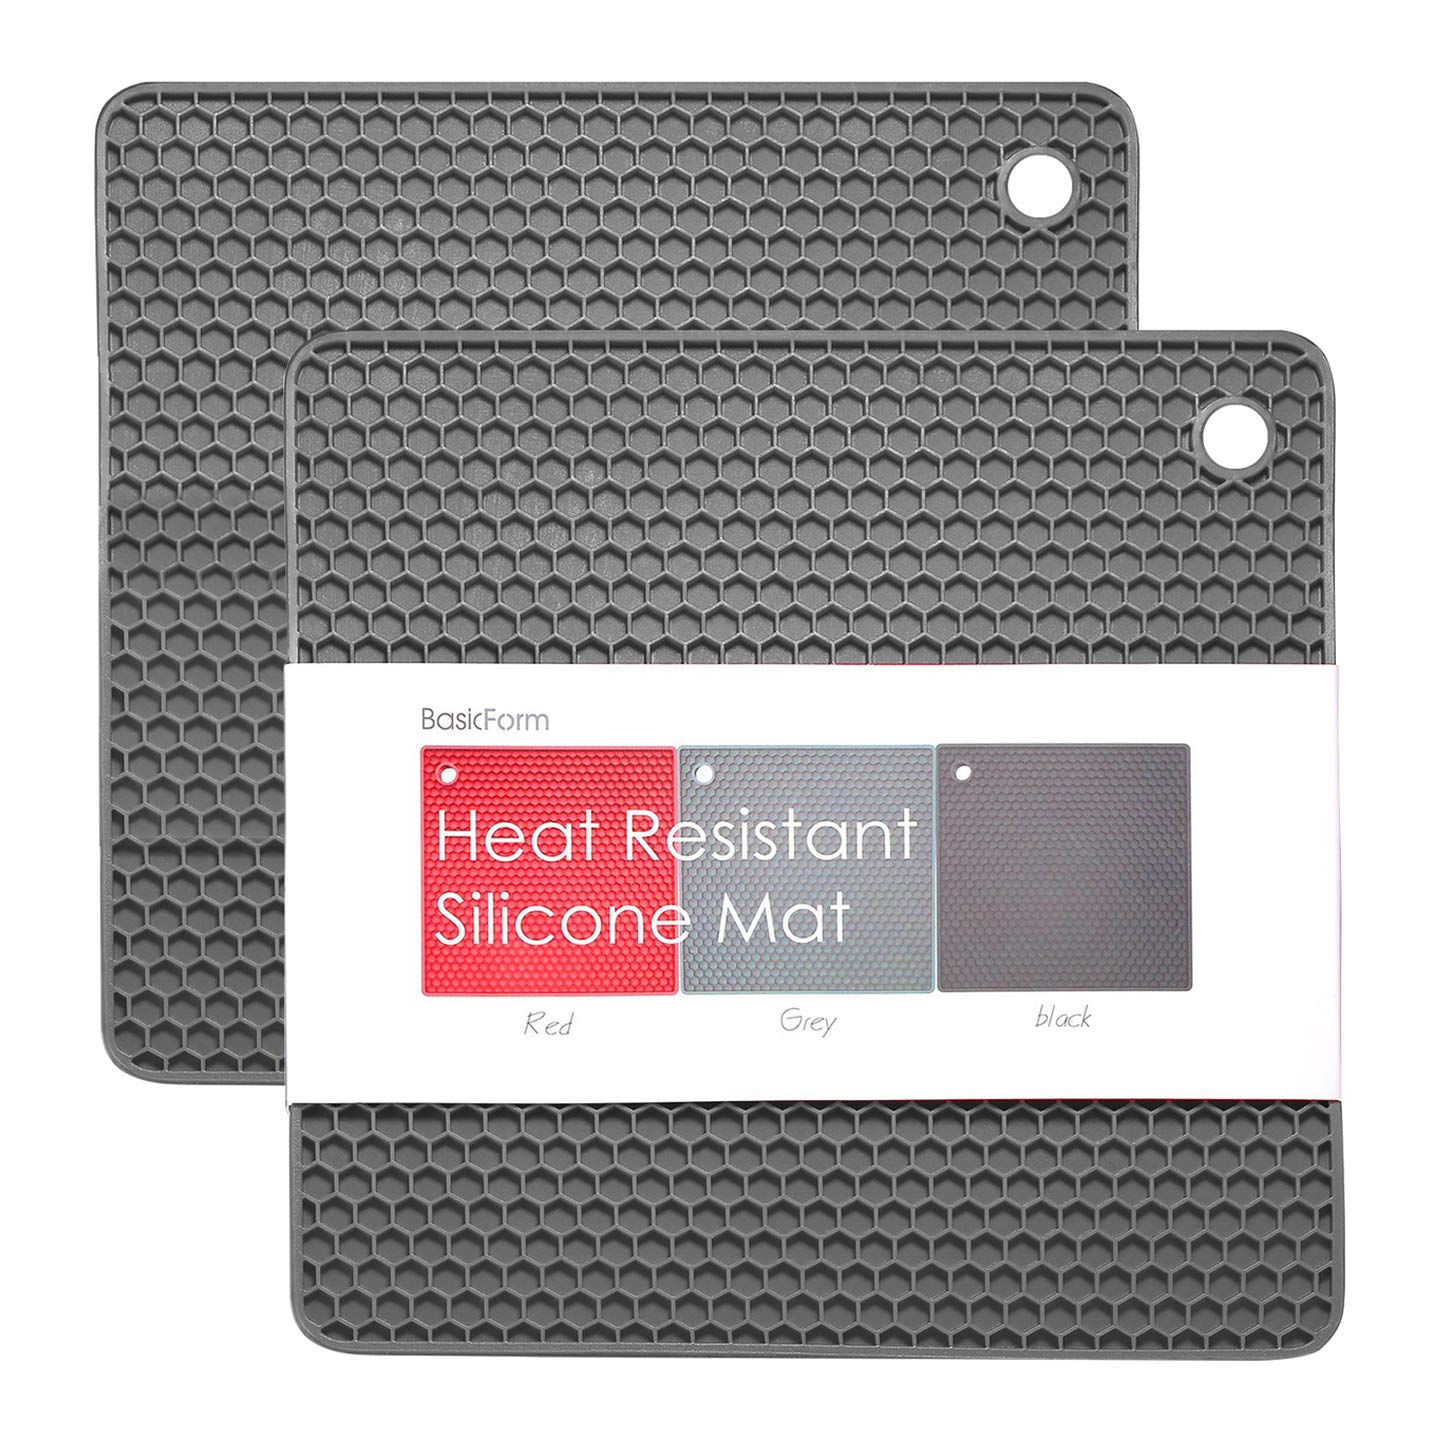 6f90493e06e Amazon.com  BasicForm Silicone Trivet Square Honeycomb Pattern 7.5x7.5x0.31  Inches (Set of 2) (Gray)  Kitchen   Dining